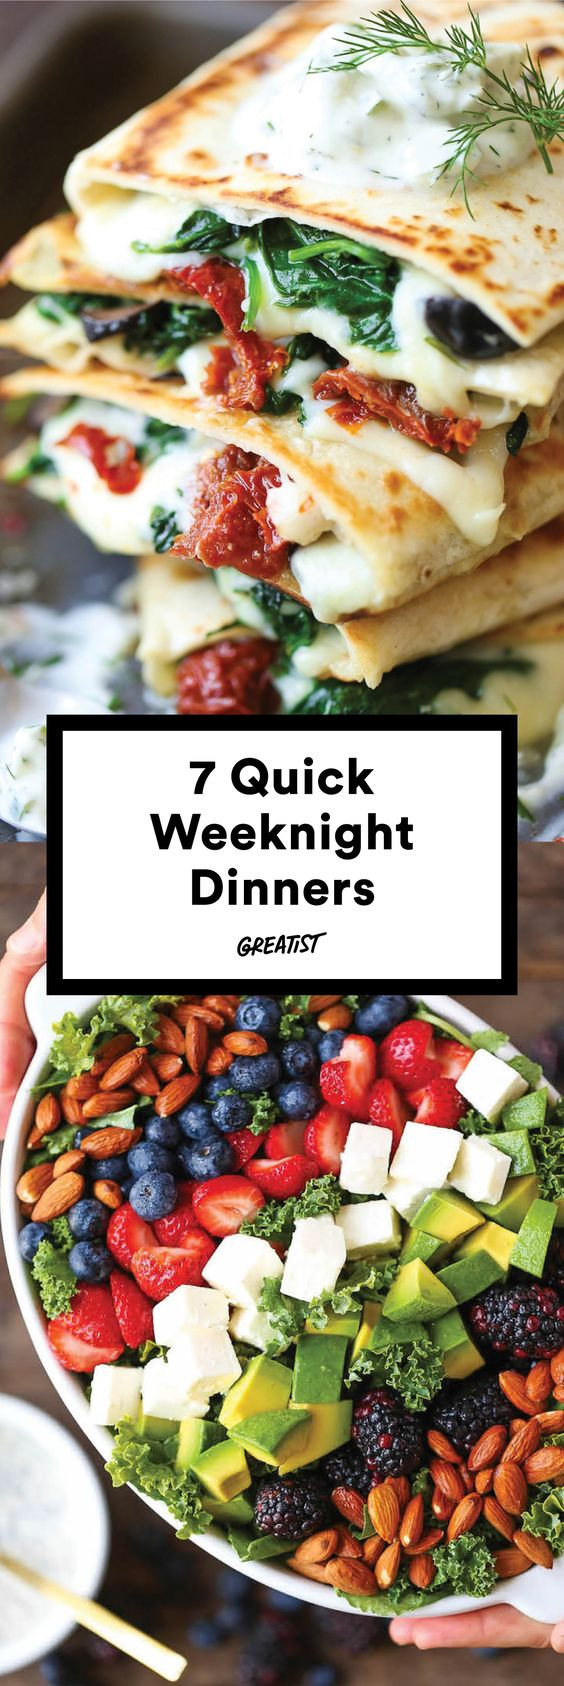 Quick Healthy Weeknight Dinners  7 Quick Fix Dinners That Make Weeknight Cooking a Cinch